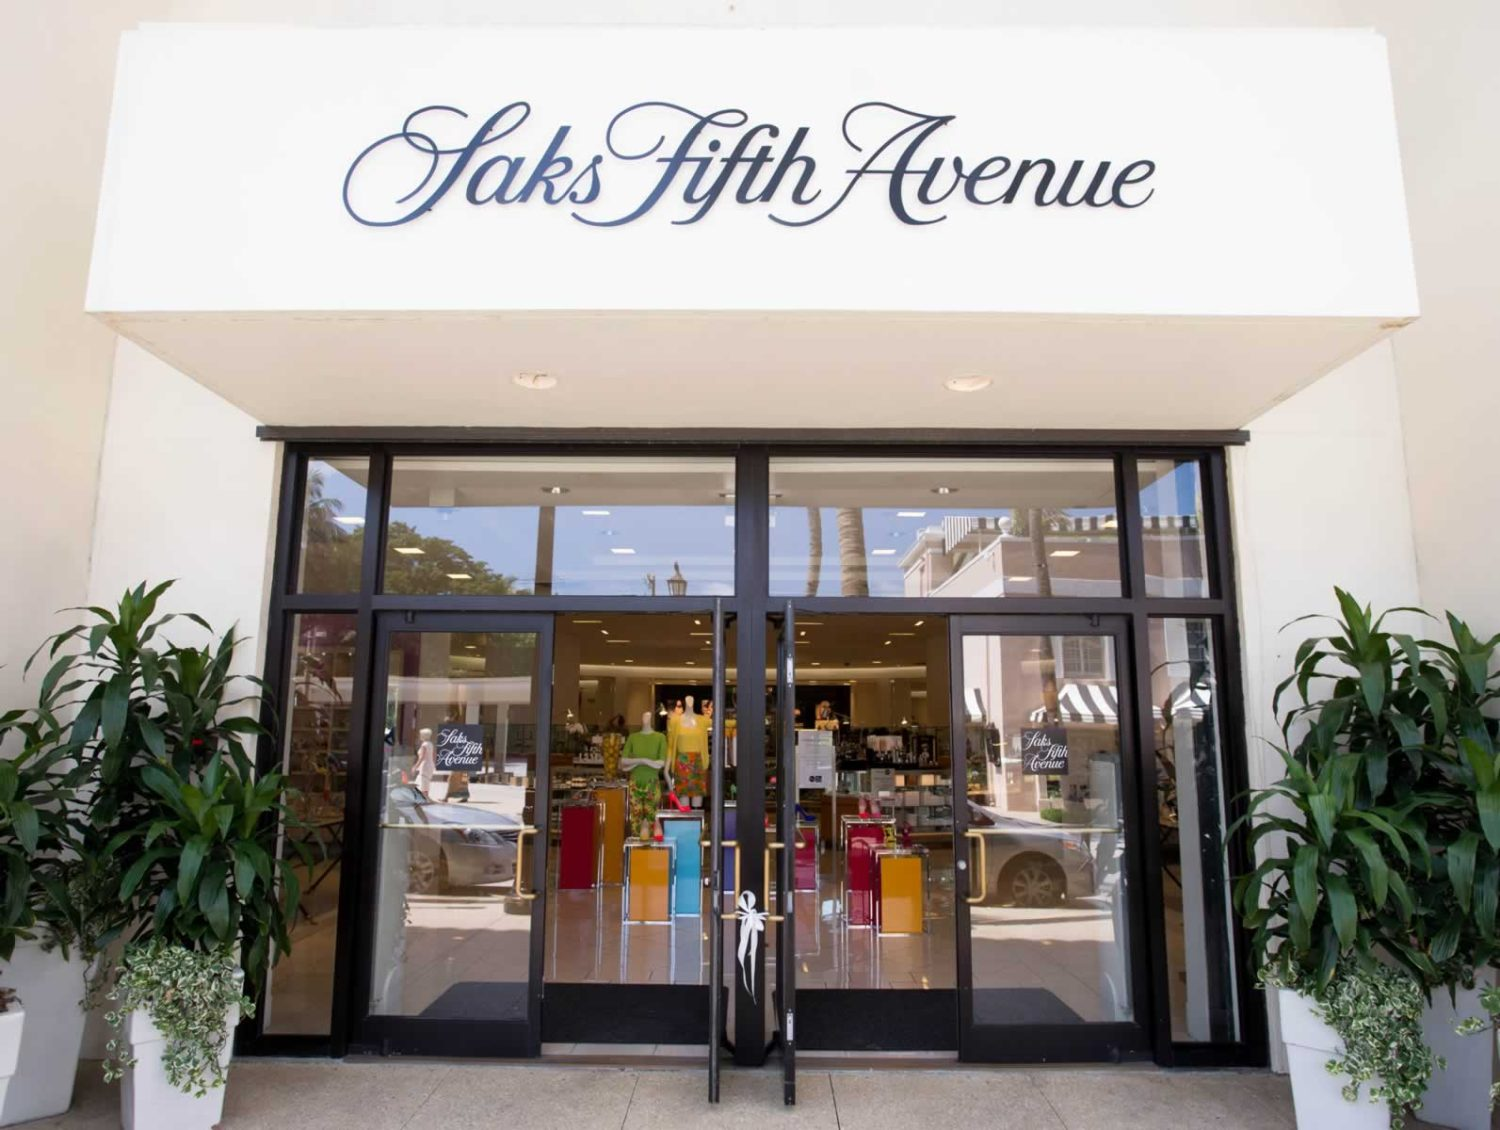 Valid on catalog and Saks Fifth Avenue store purchases on 12/6/18 & 12/7/ Excludes some designer collections, leased collections, beauty salons, Saks Fifth Avenue OFF 5th stores, vetmed.ml, gift card, charitable merchandise and Saks employee purchases and those shopping with a Saks Fifth Avenue discount card.